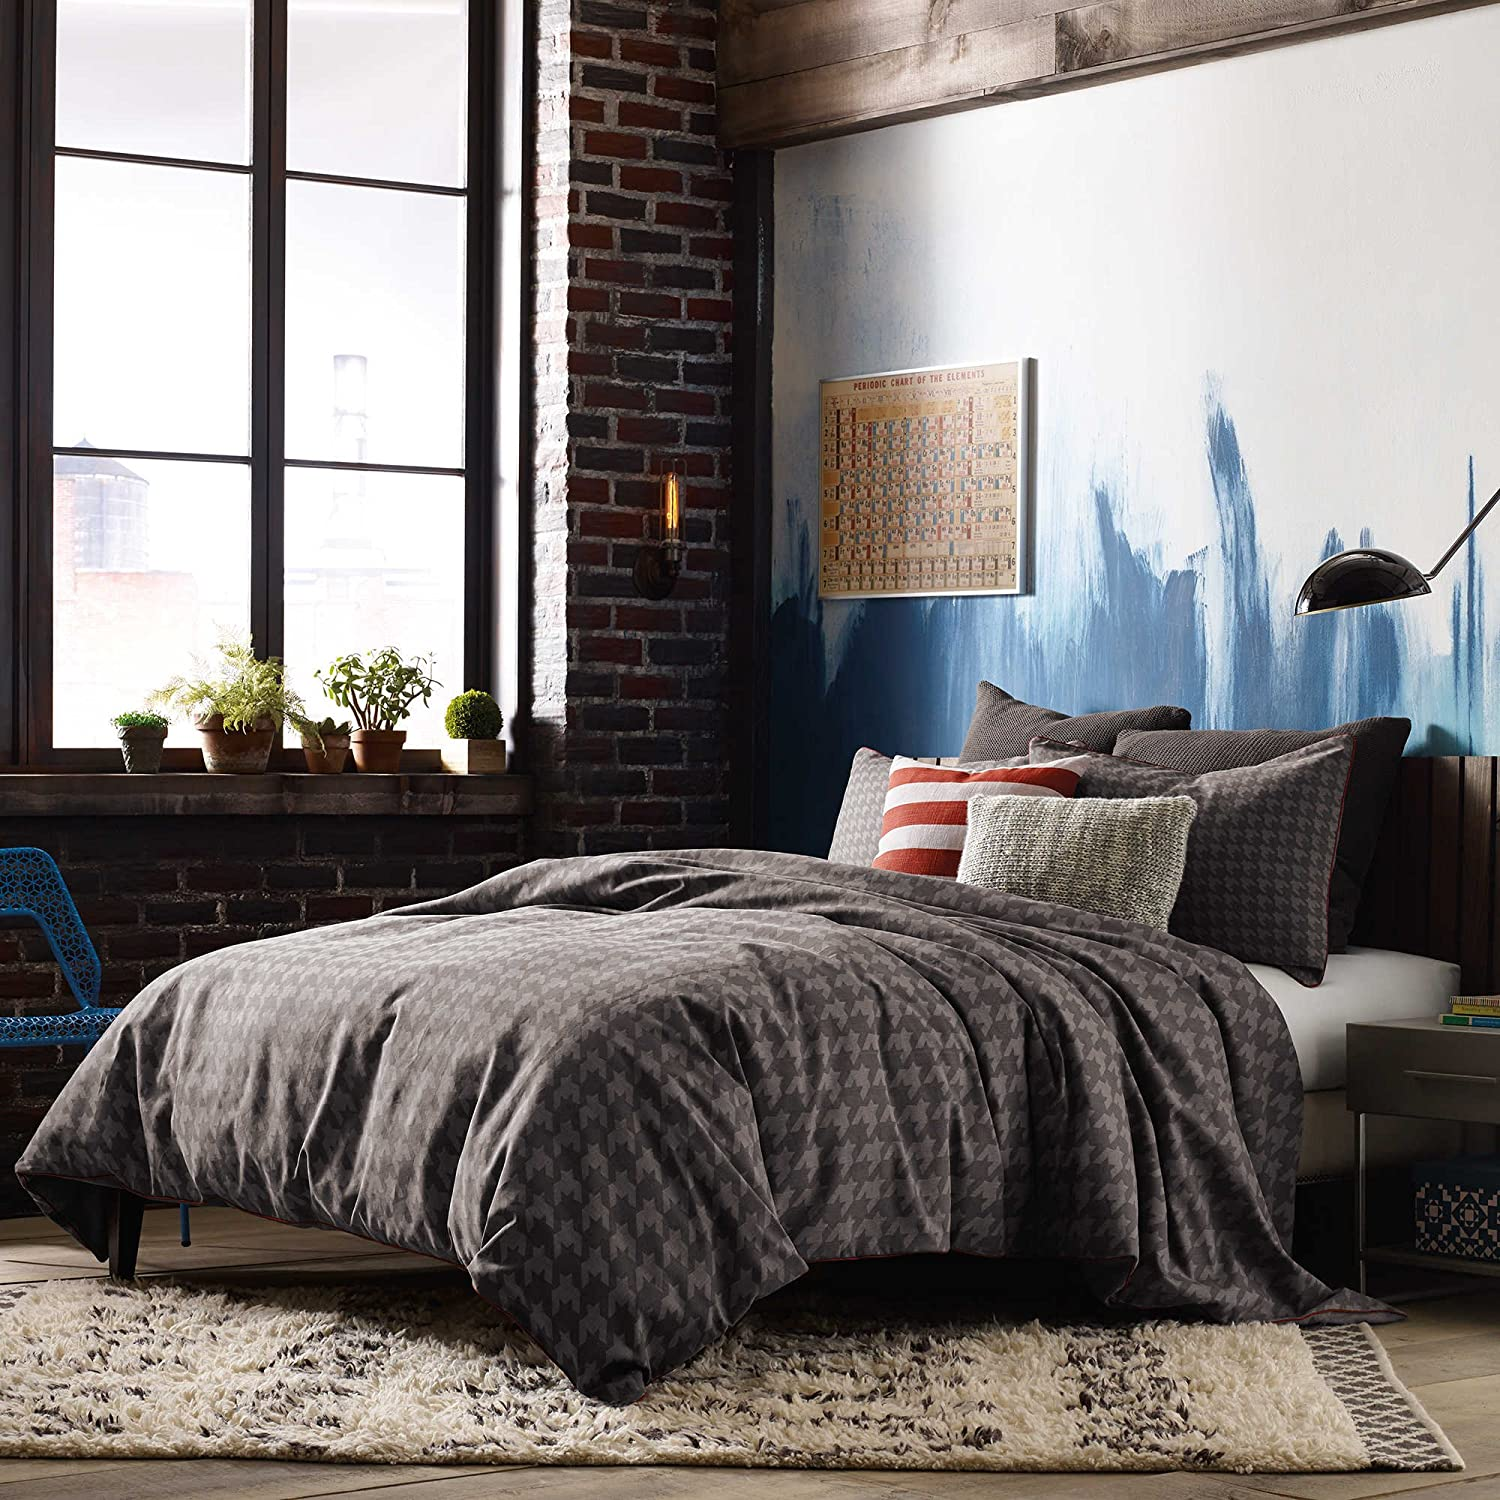 Masculine Bedding Sets Queen Cool Great Masculine Comforter Set About Remodel Duvet Covers